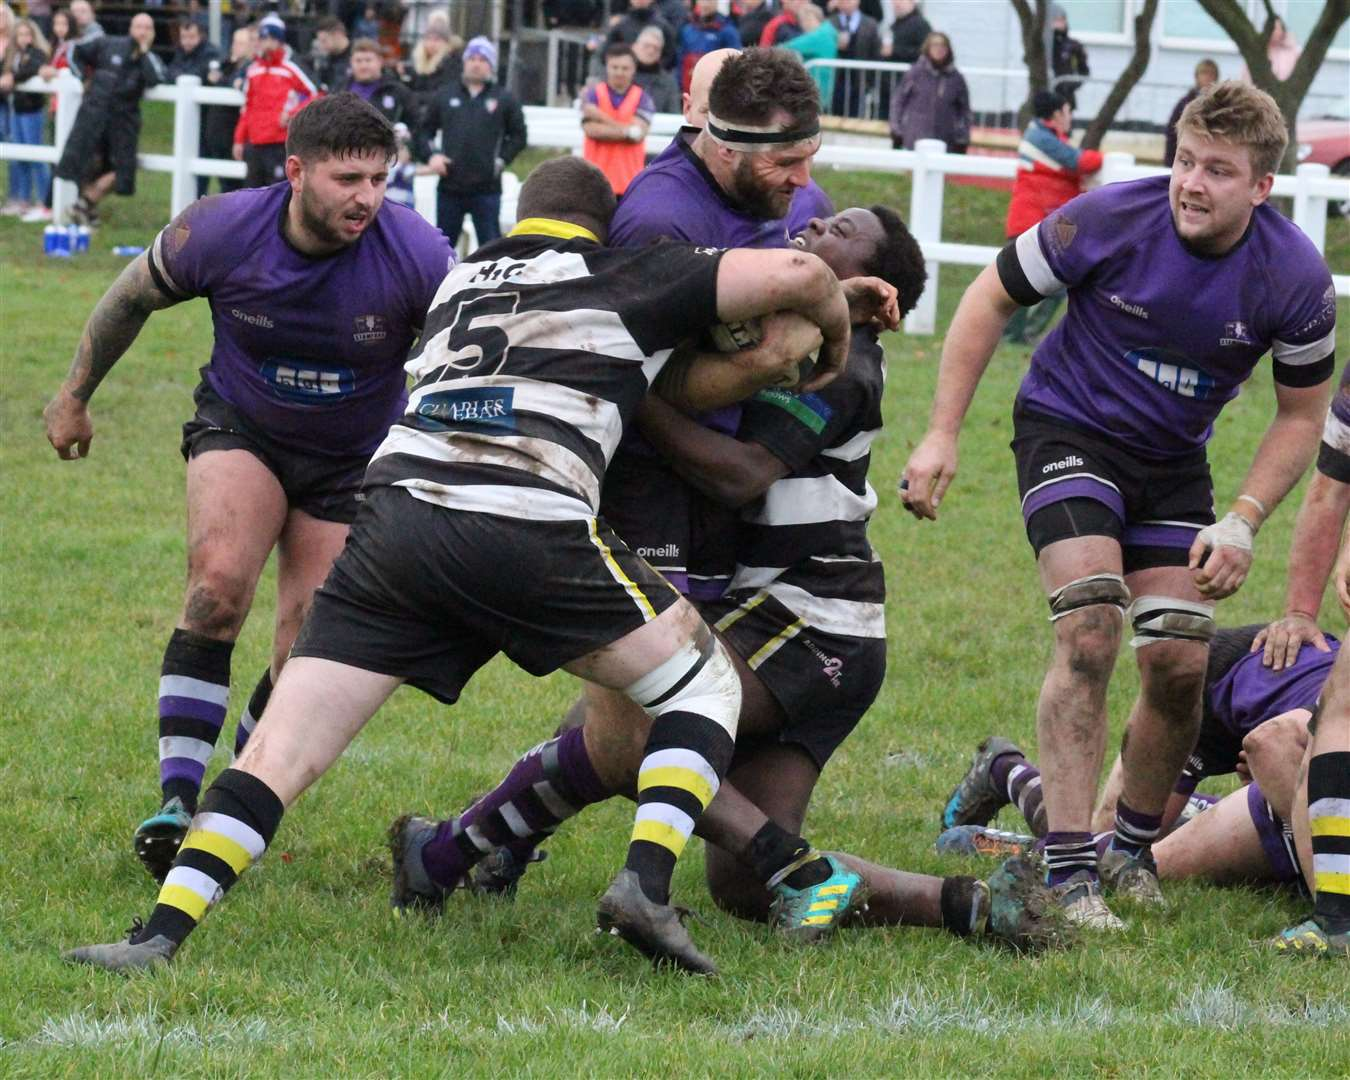 Action from Stamford's victory at Rushden & Higham on Saturday. Photo: Darren Dolby (21889425)